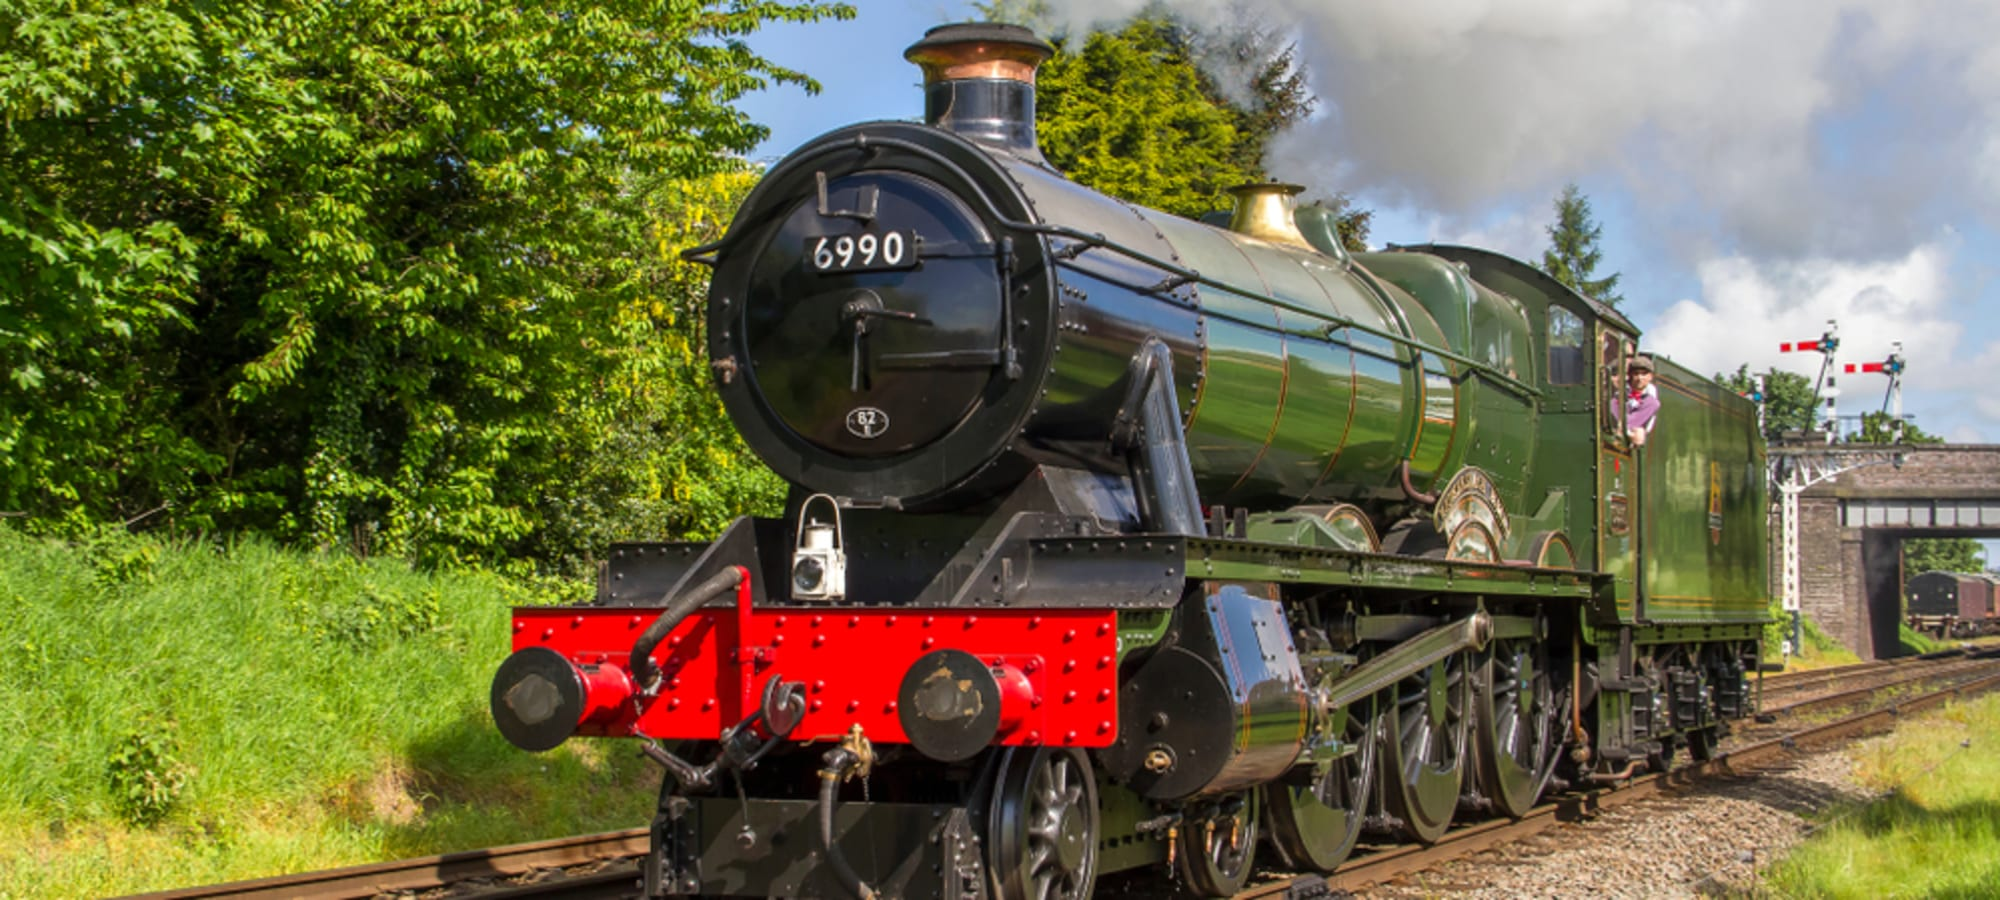 6990 Witherslack Hall